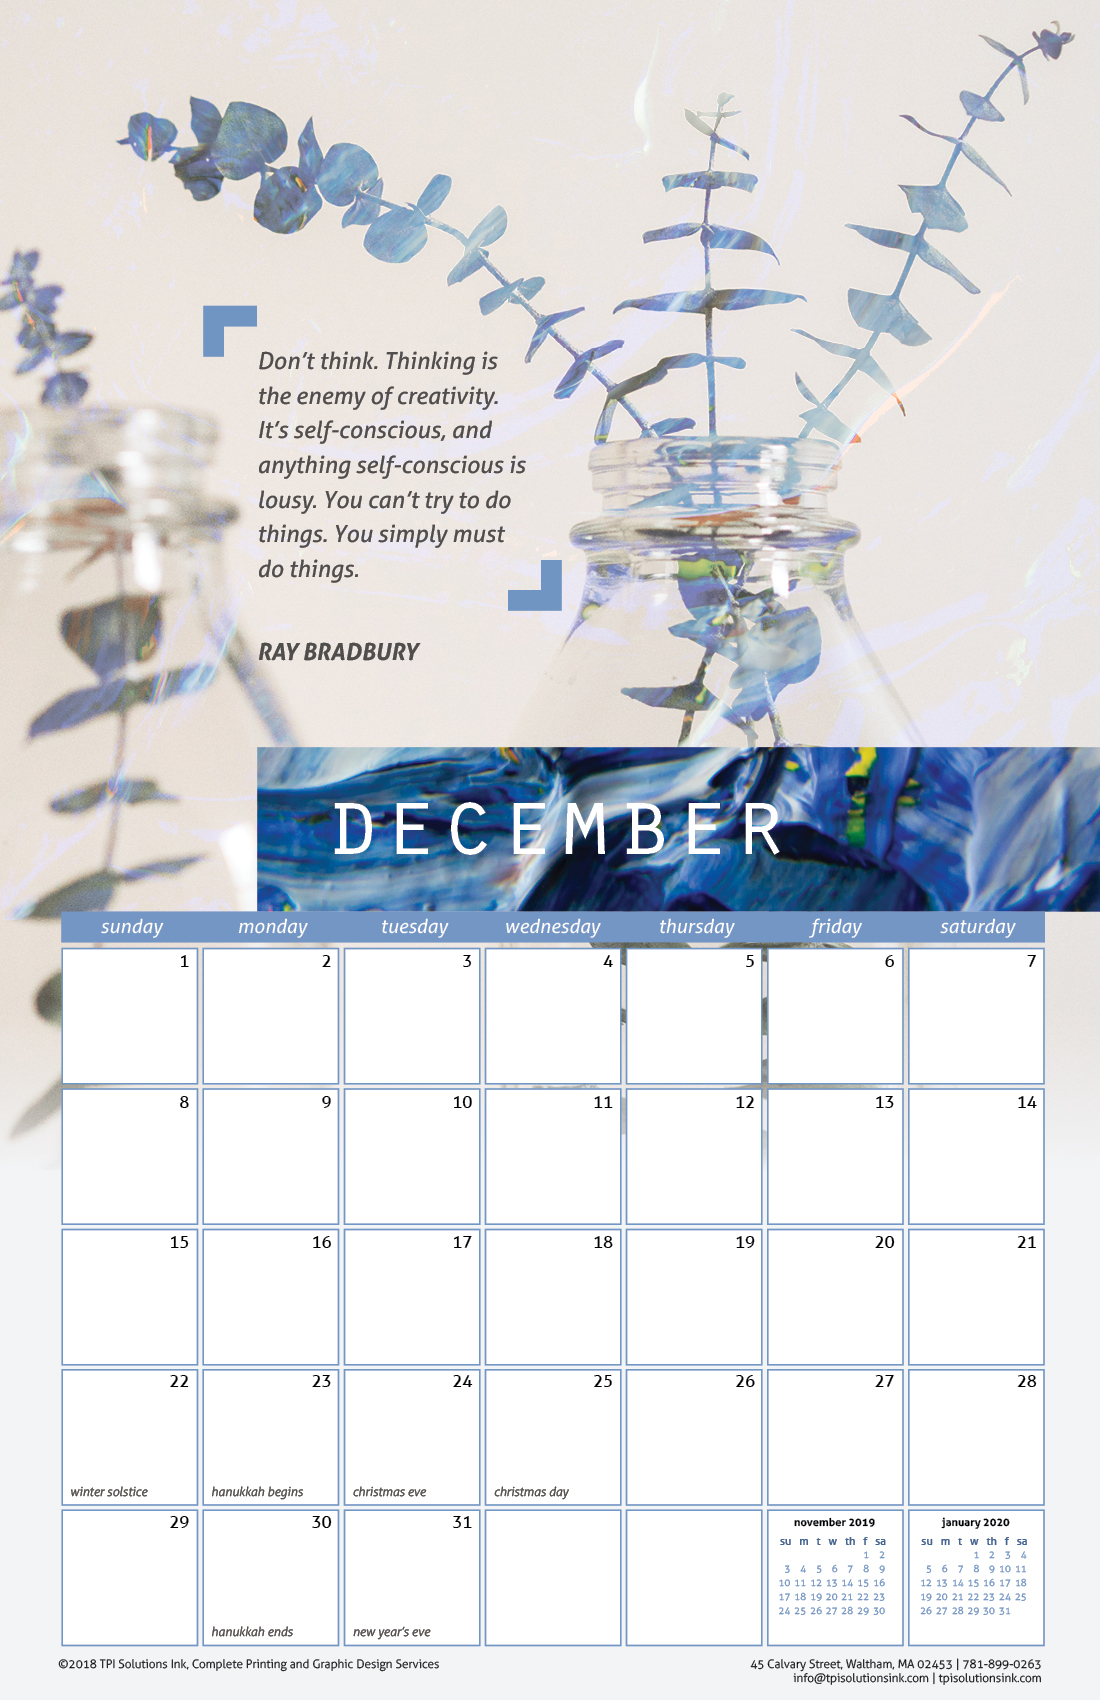 Free December 2019 Printable Wall Calendar with Quote from Ray Bradbury